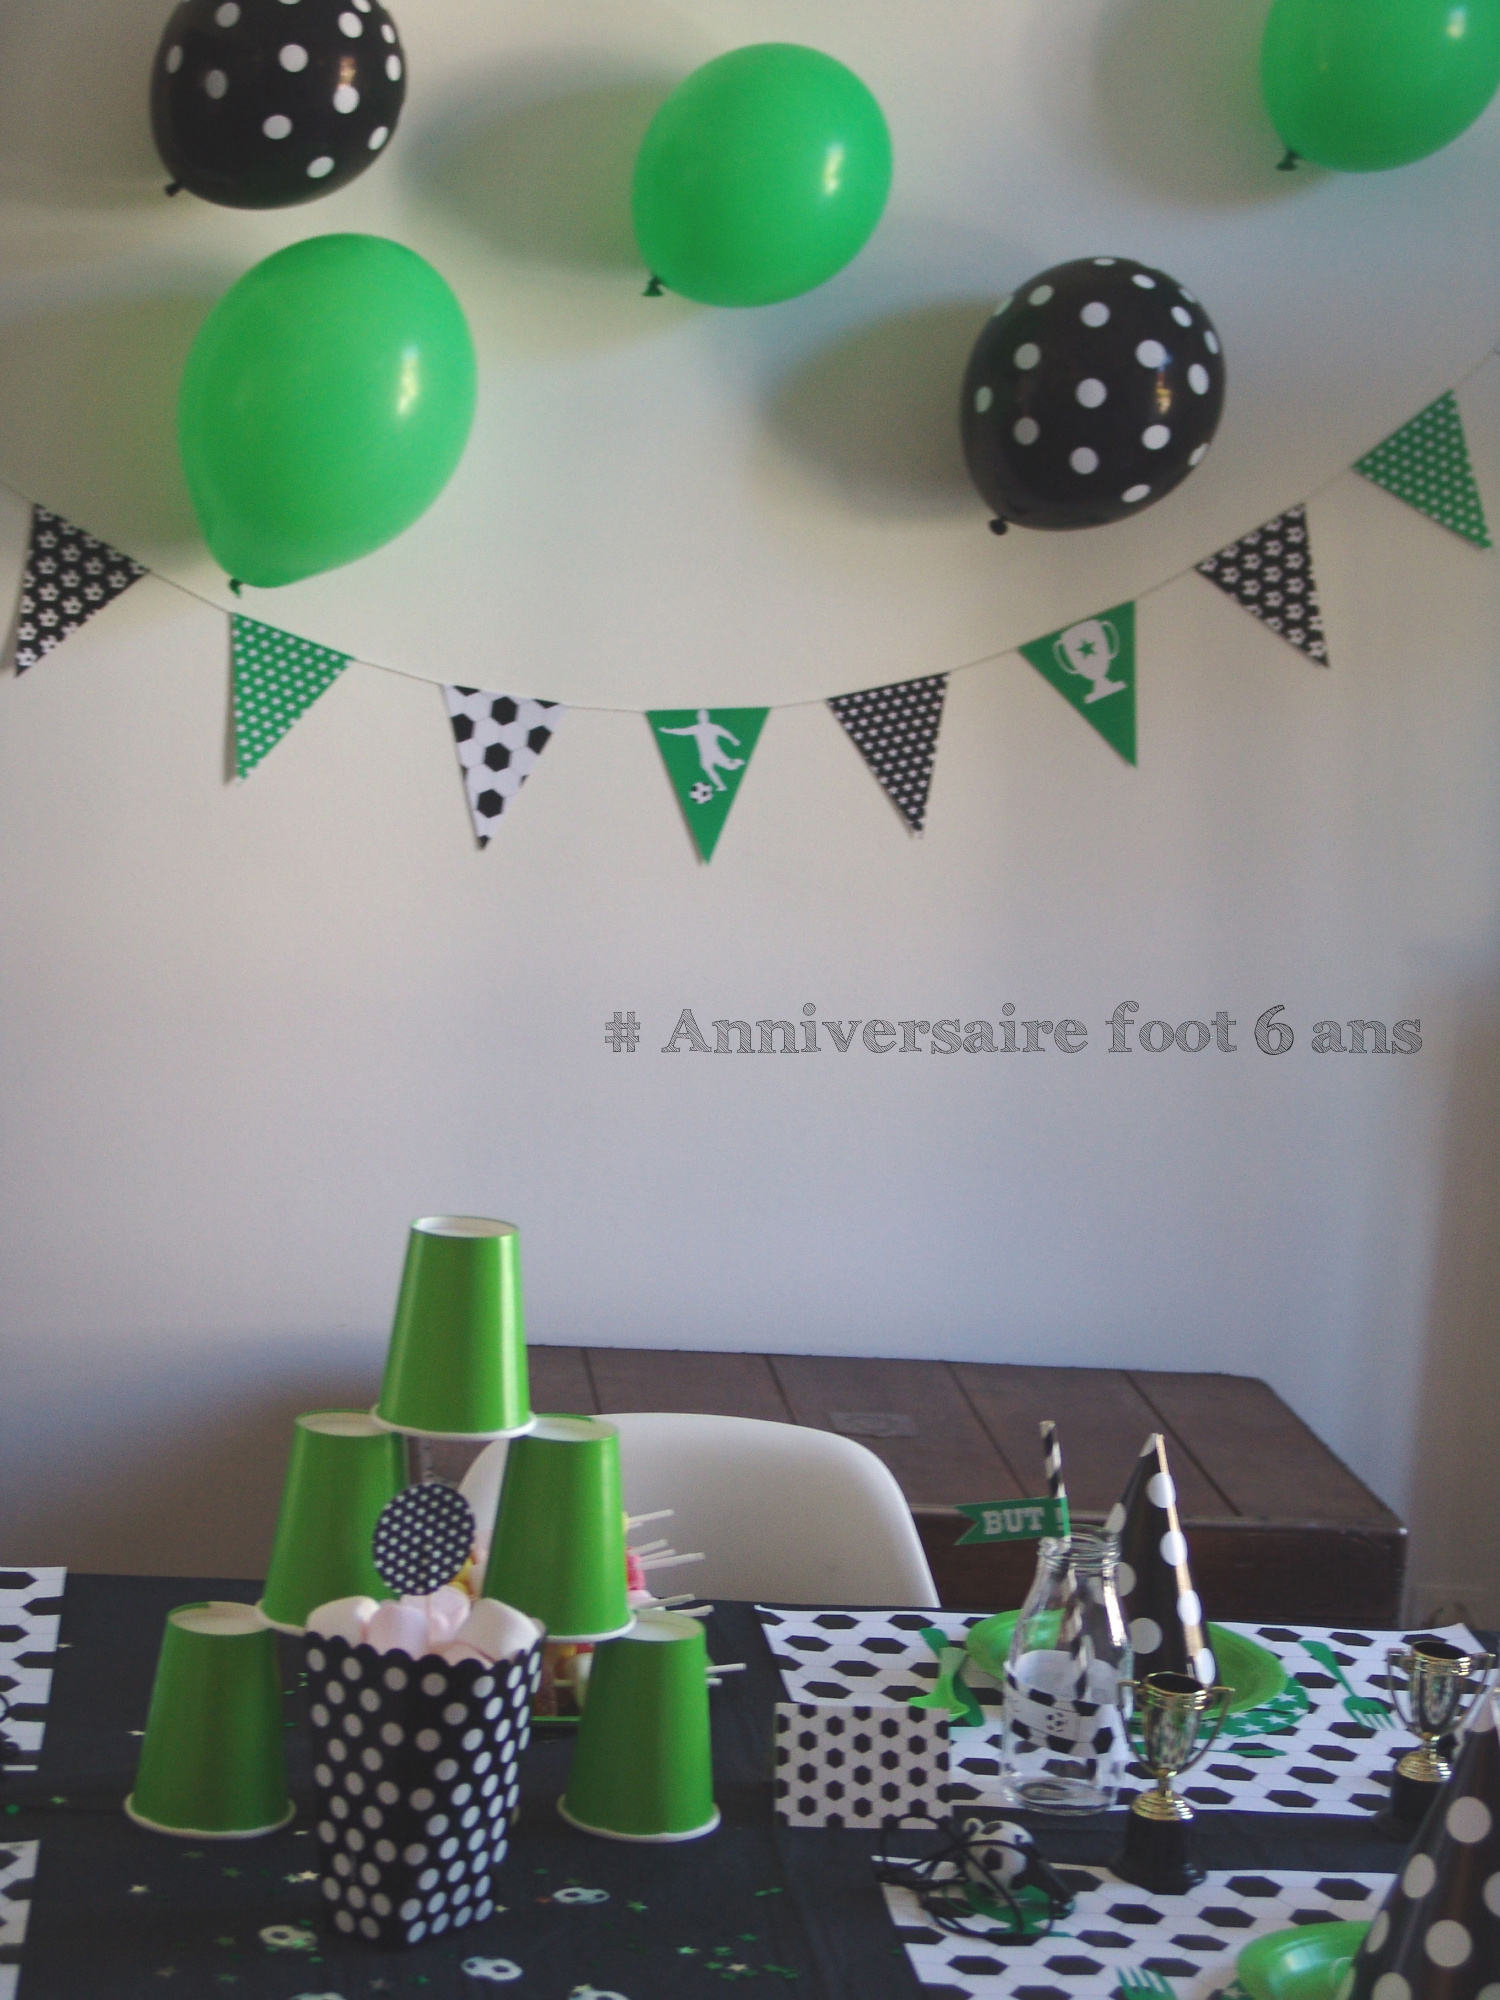 les anniversaires blog de deco fete anniversaire baby shower bapteme mariage. Black Bedroom Furniture Sets. Home Design Ideas